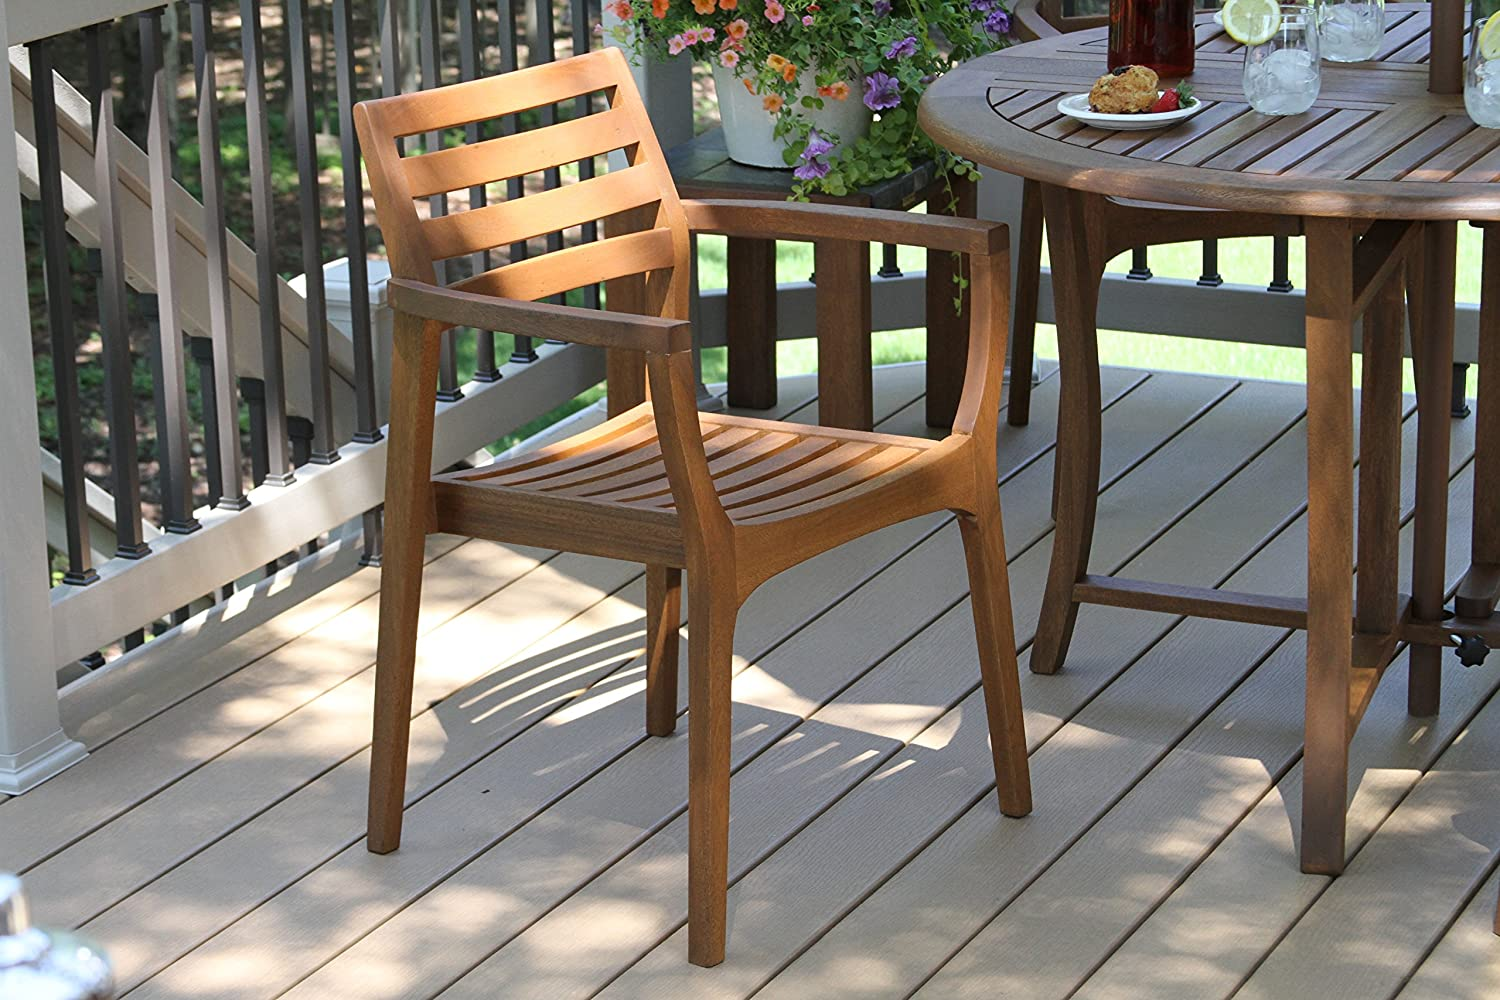 Amazon.com : Outdoor Interiors Stacking Chairs, Brown, Set Of 4 : Garden U0026  Outdoor